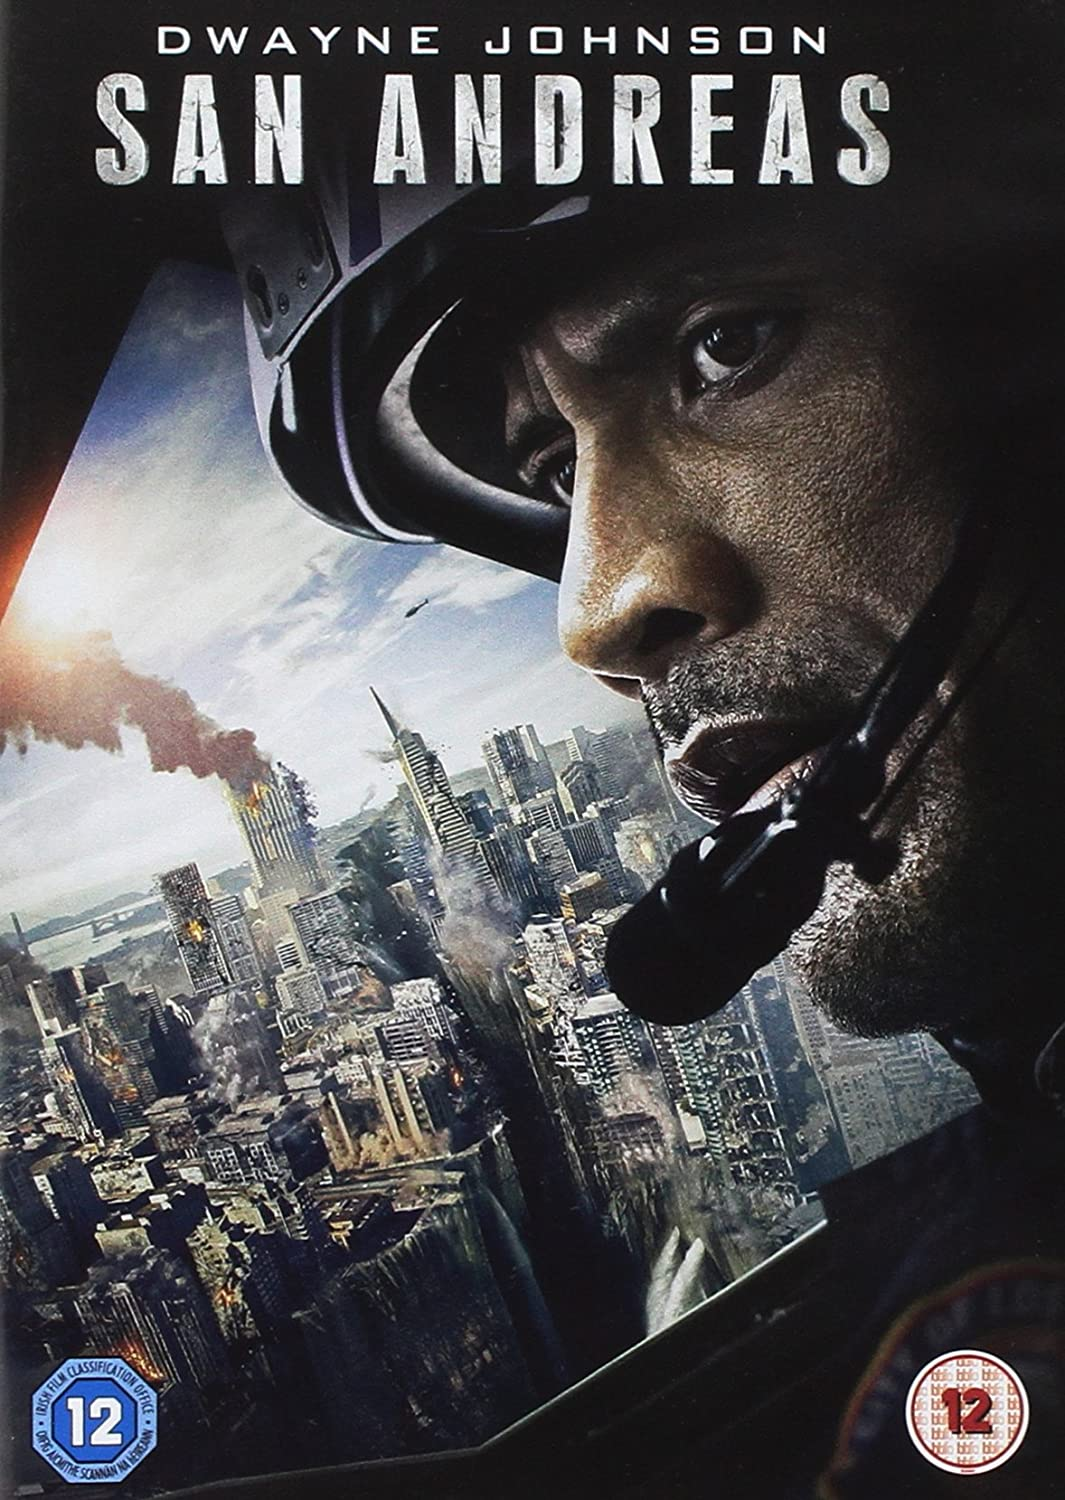 what is san andreas based on movie